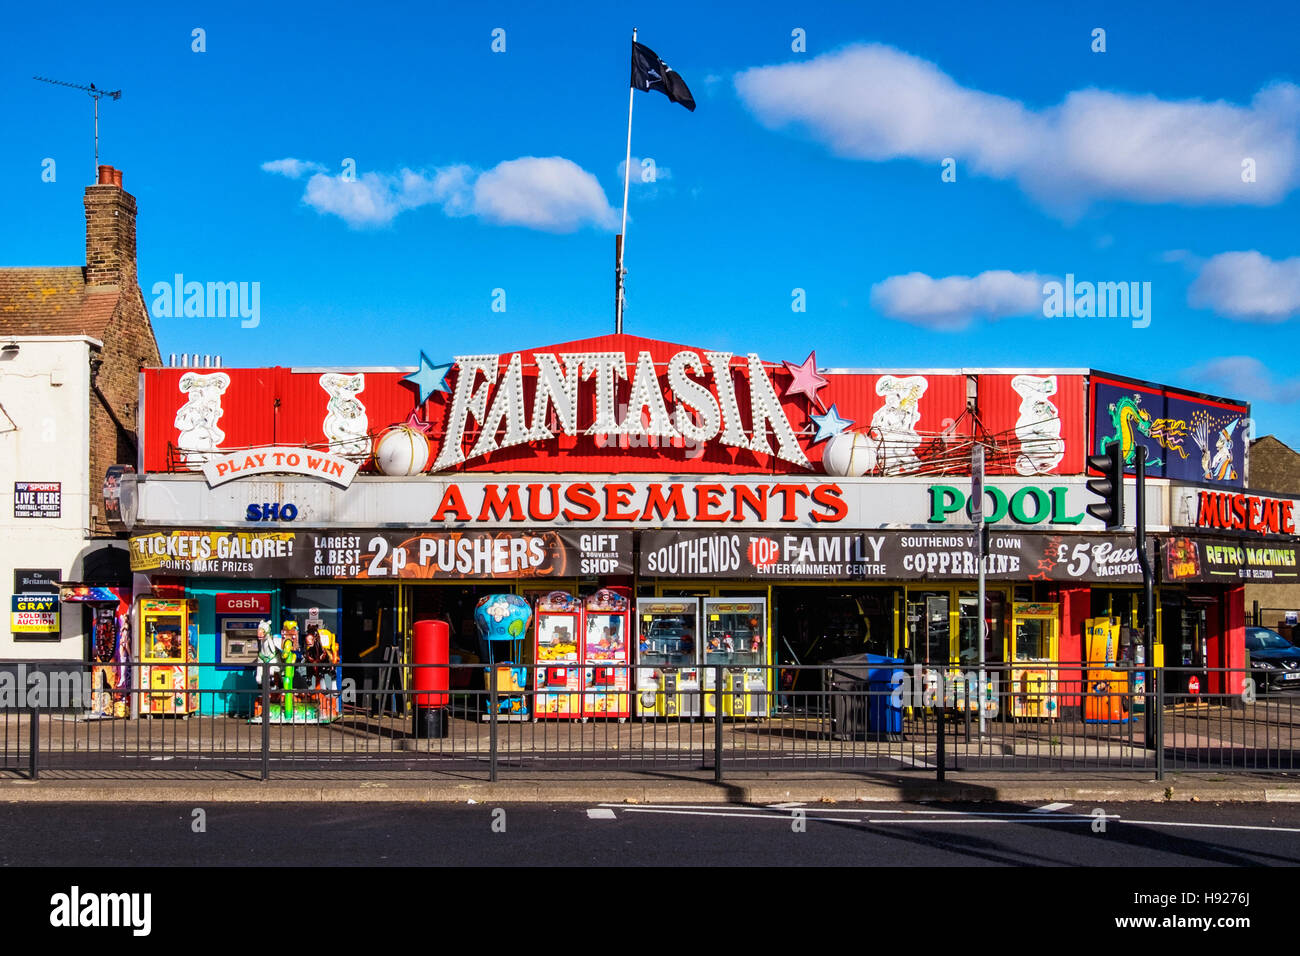 Fantasia amusement arcade for playing games, pool, slot machines and betting. Southend-on-sea, Essex,England - Stock Image